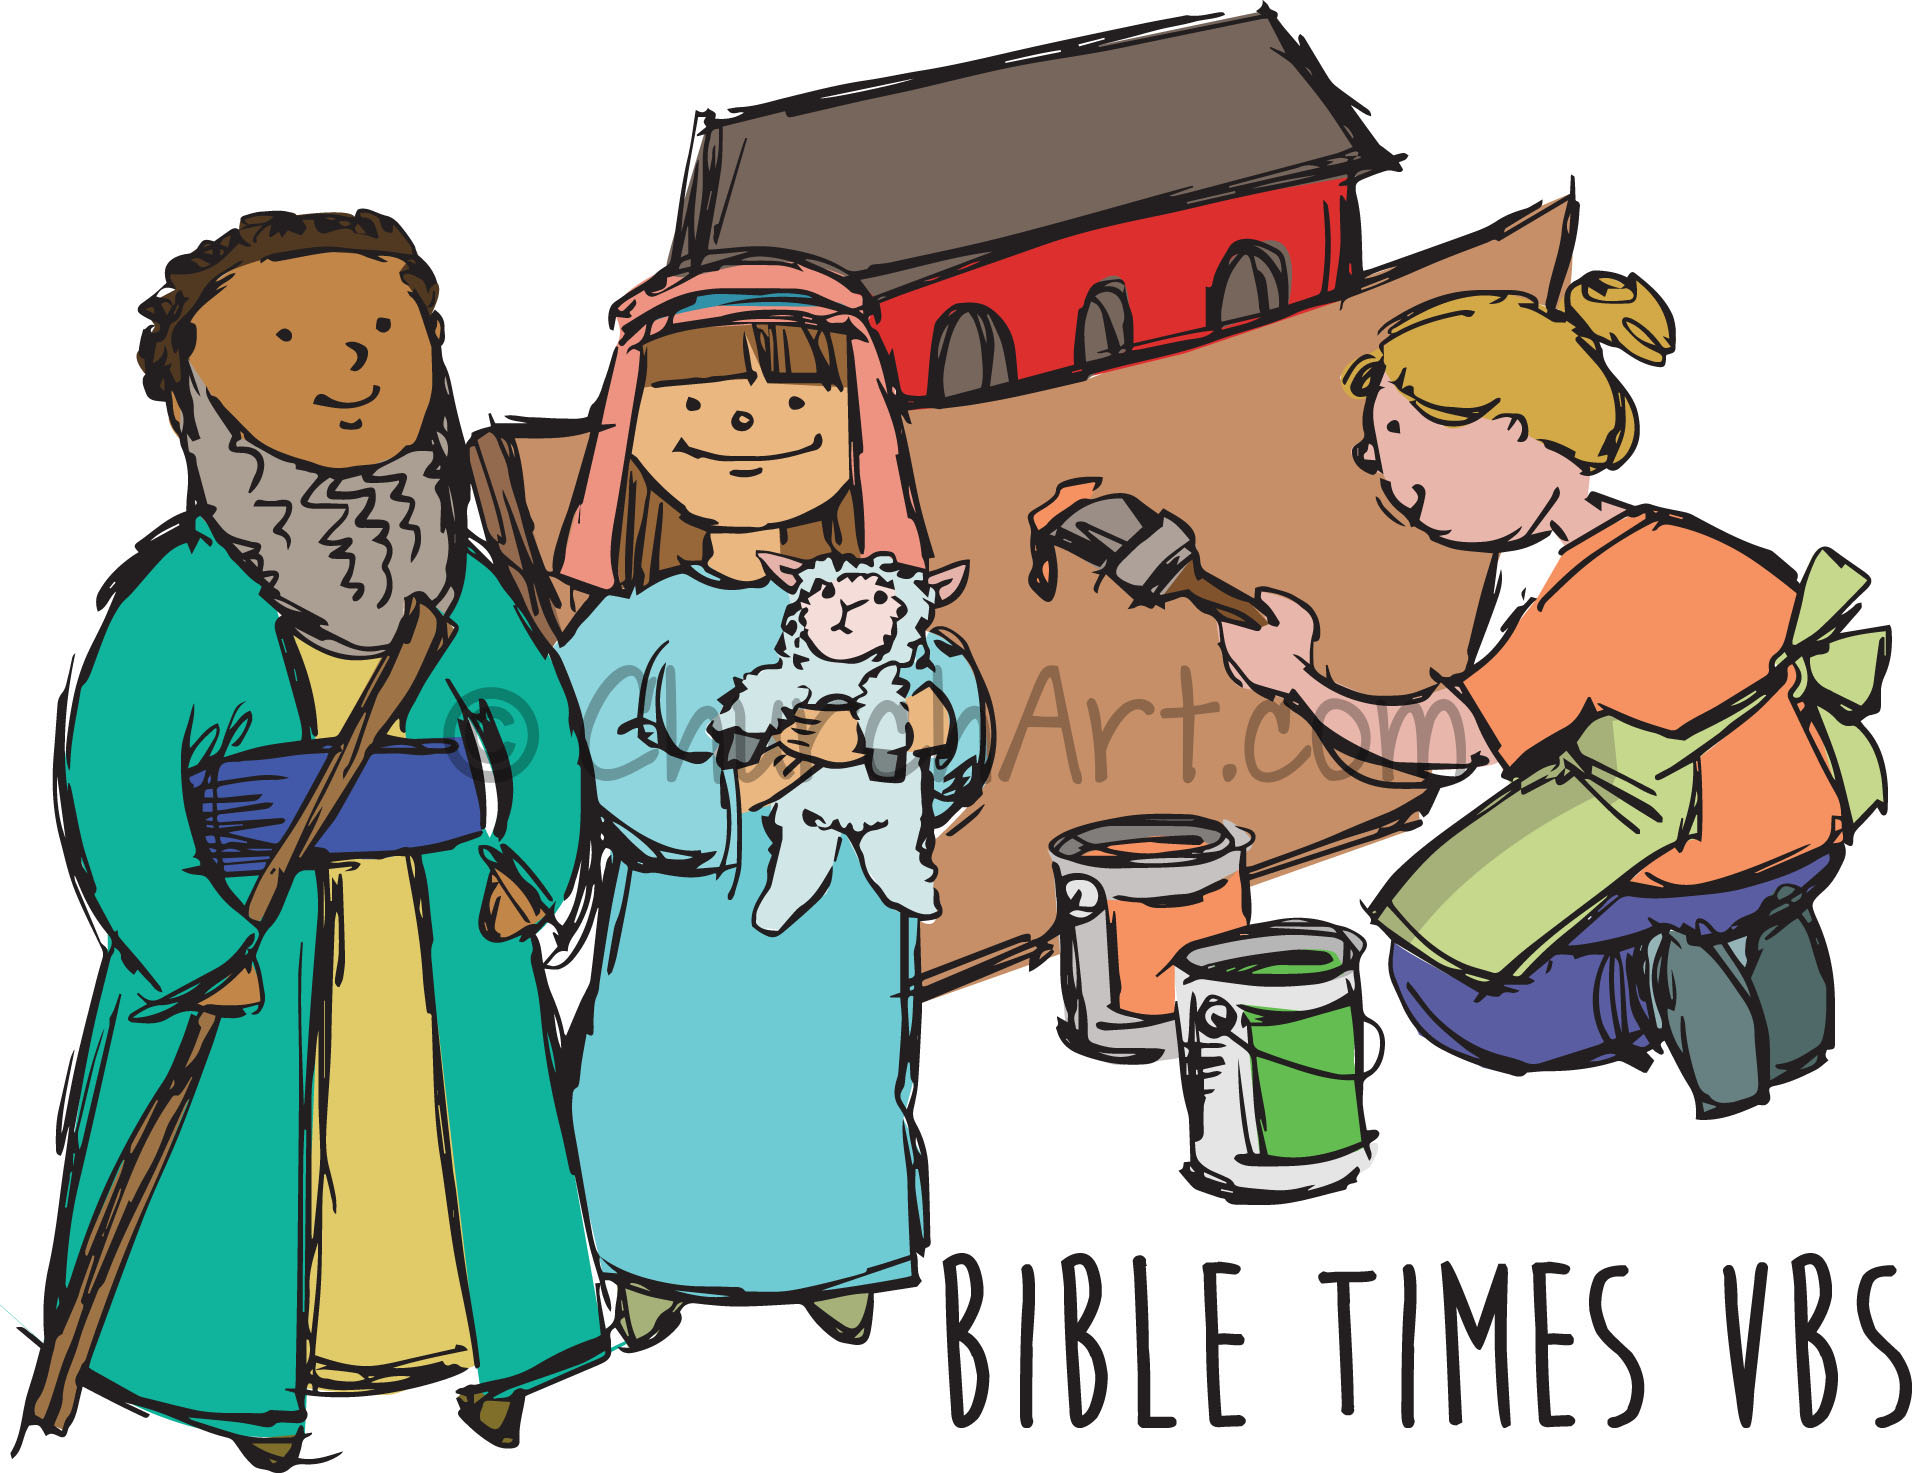 Vacation Bible School Clip-Art with children dressed as Bible characters, a girl painting Noah's ark and BIBLE TIMES VBS caption